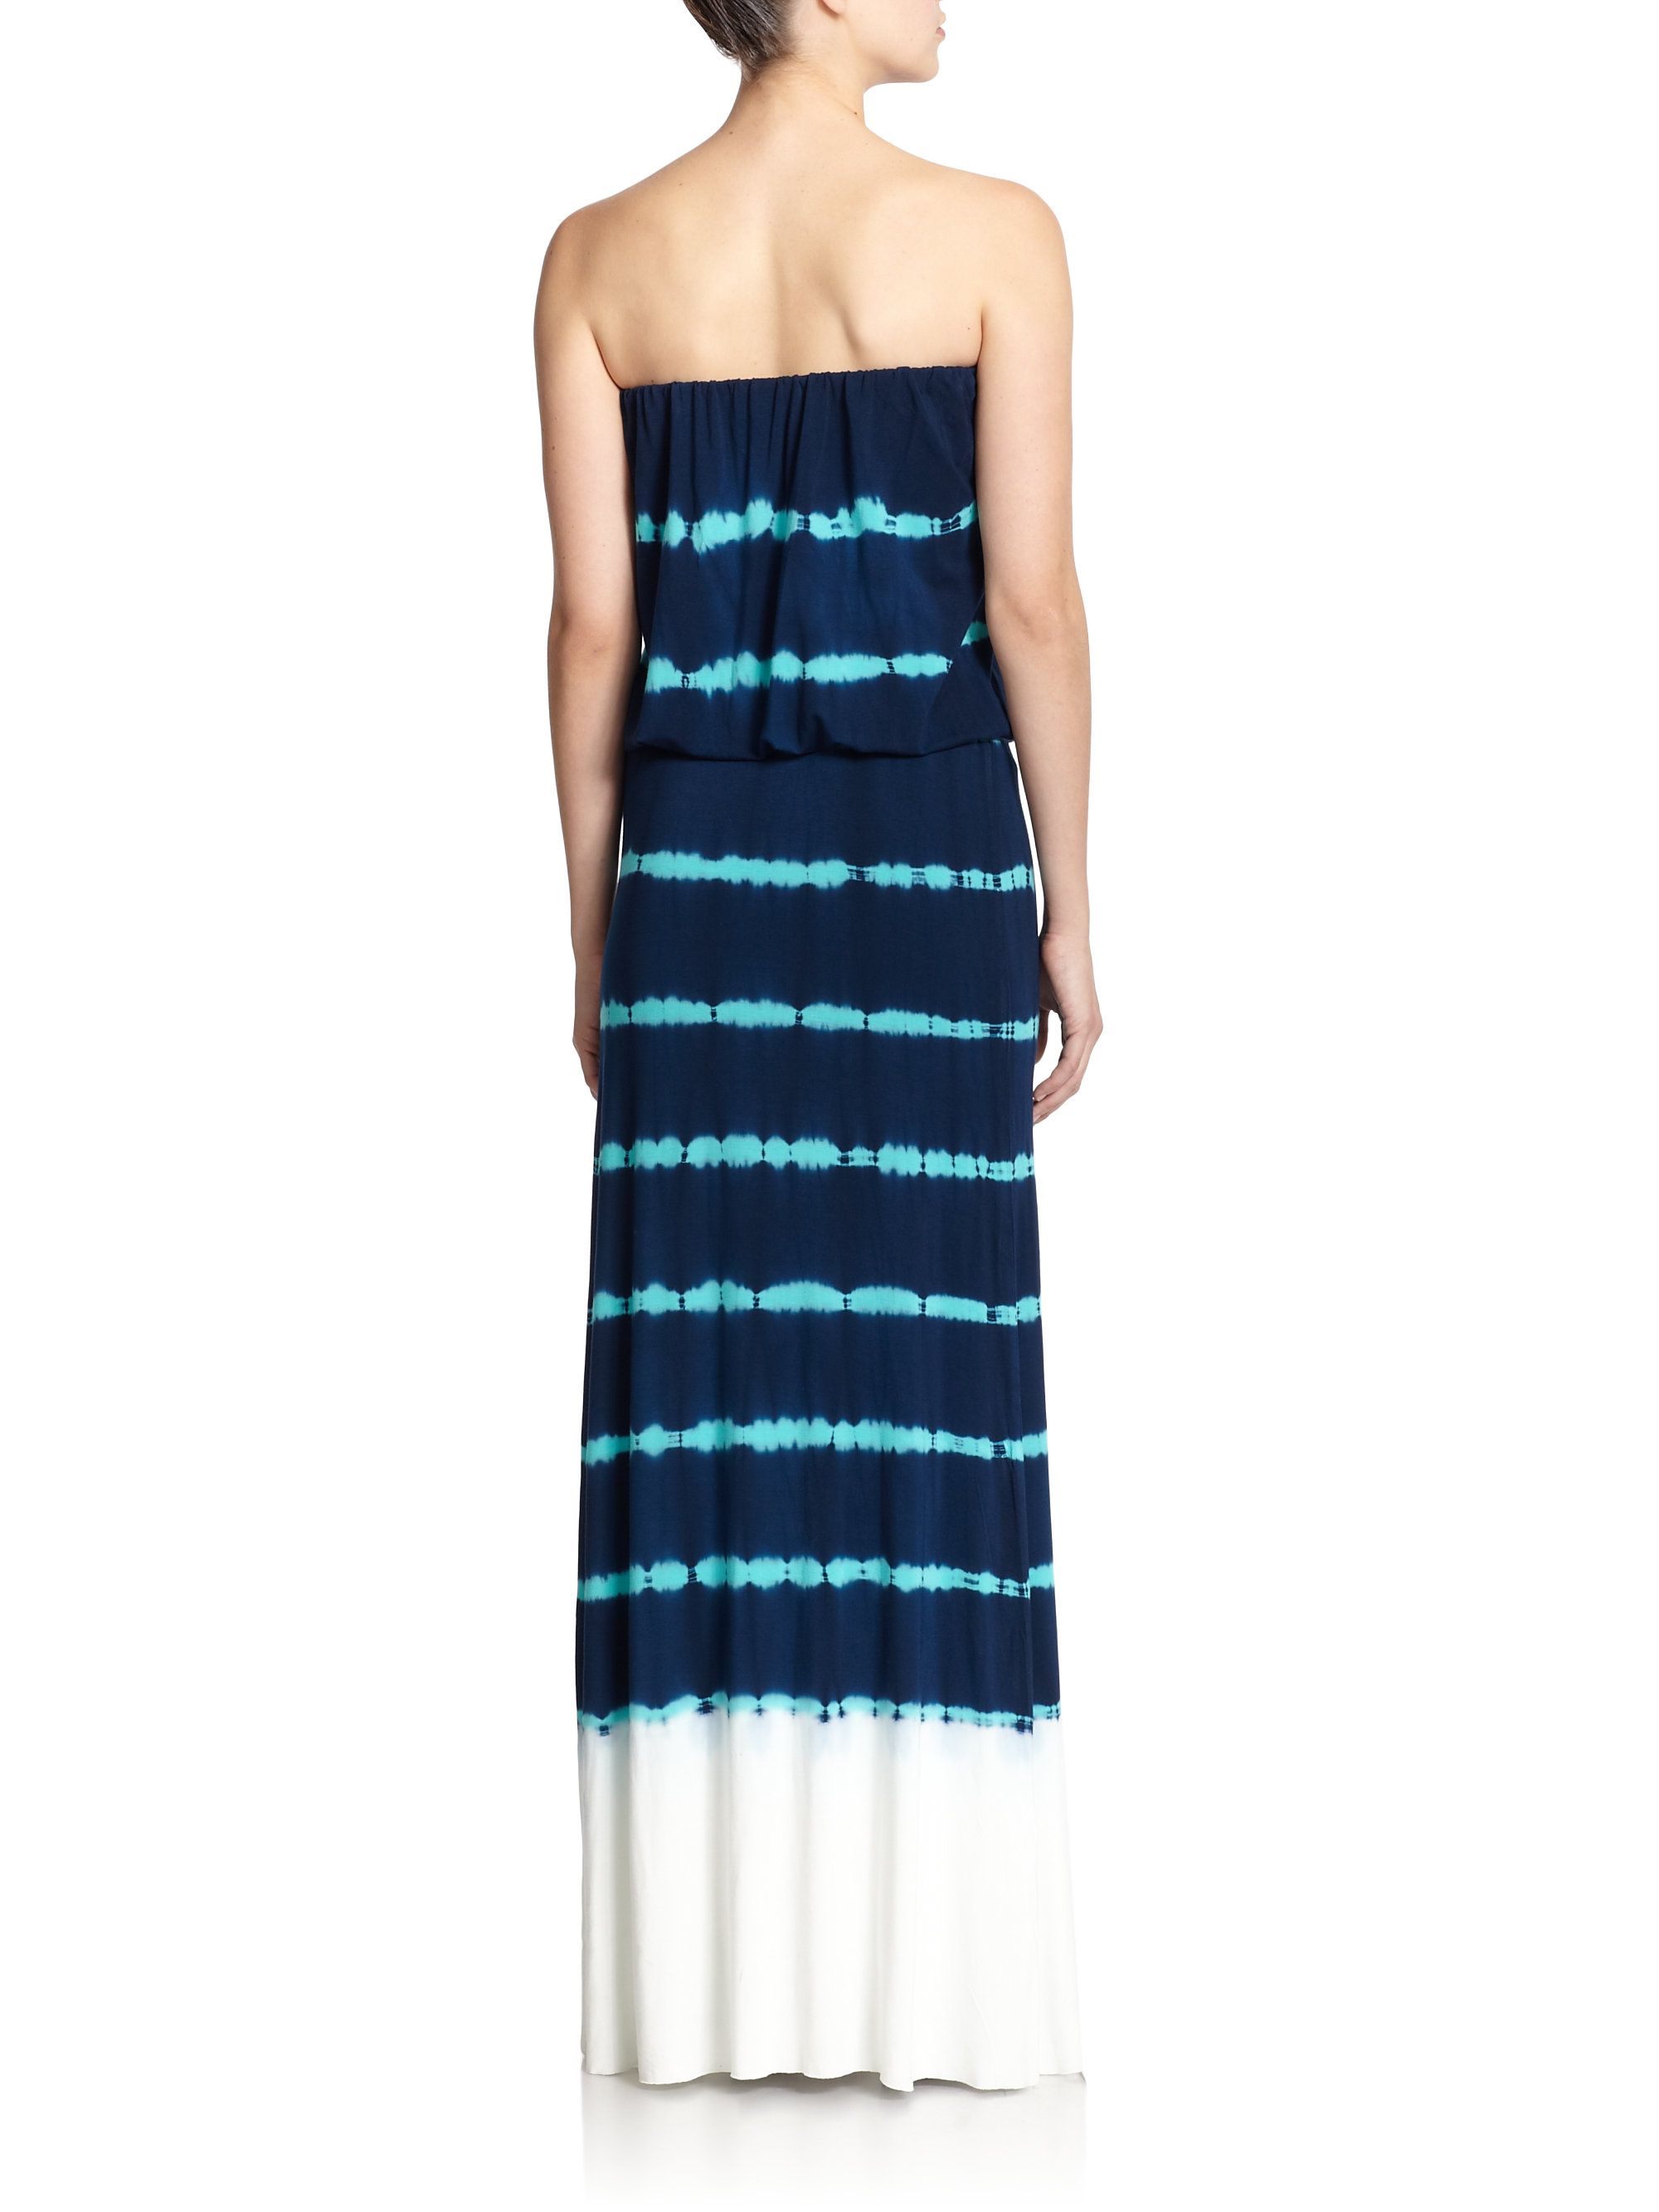 Summer Maxi Dresses, Casual Maxi Dresses, Evening Maxi Dresses, floral maxi dresses, Beach Maxi Dresses Australia. We are excited about the weather in Sydney at the moment. The warmer weather means its time for a wardrobe update and the 'Country Dreamer Dress' should make the cut. A maxi dress should be the ultimate summer staple and.